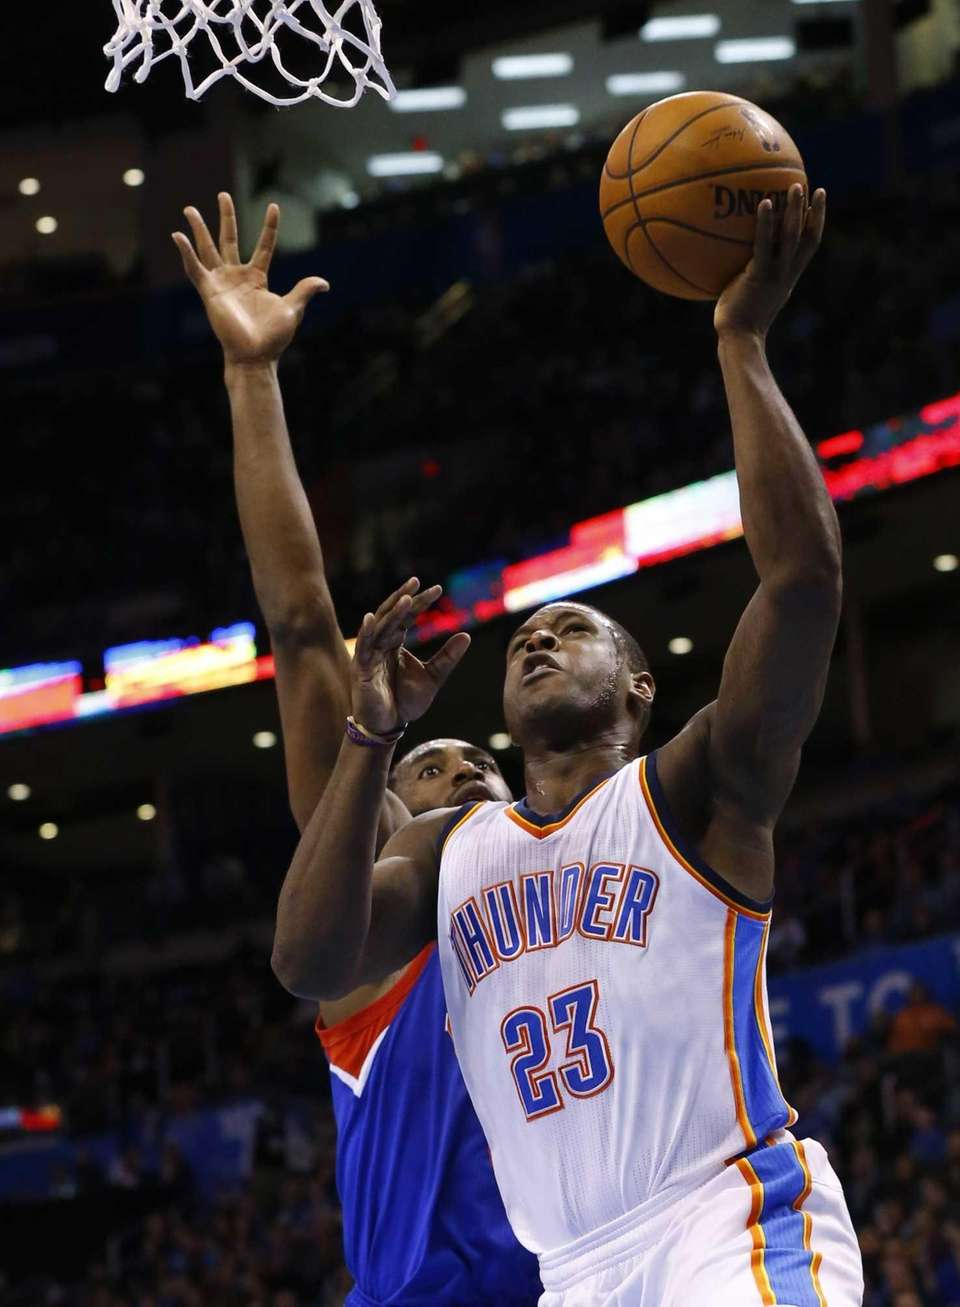 Oklahoma City Thunder guard Dion Waiters (23) shoots